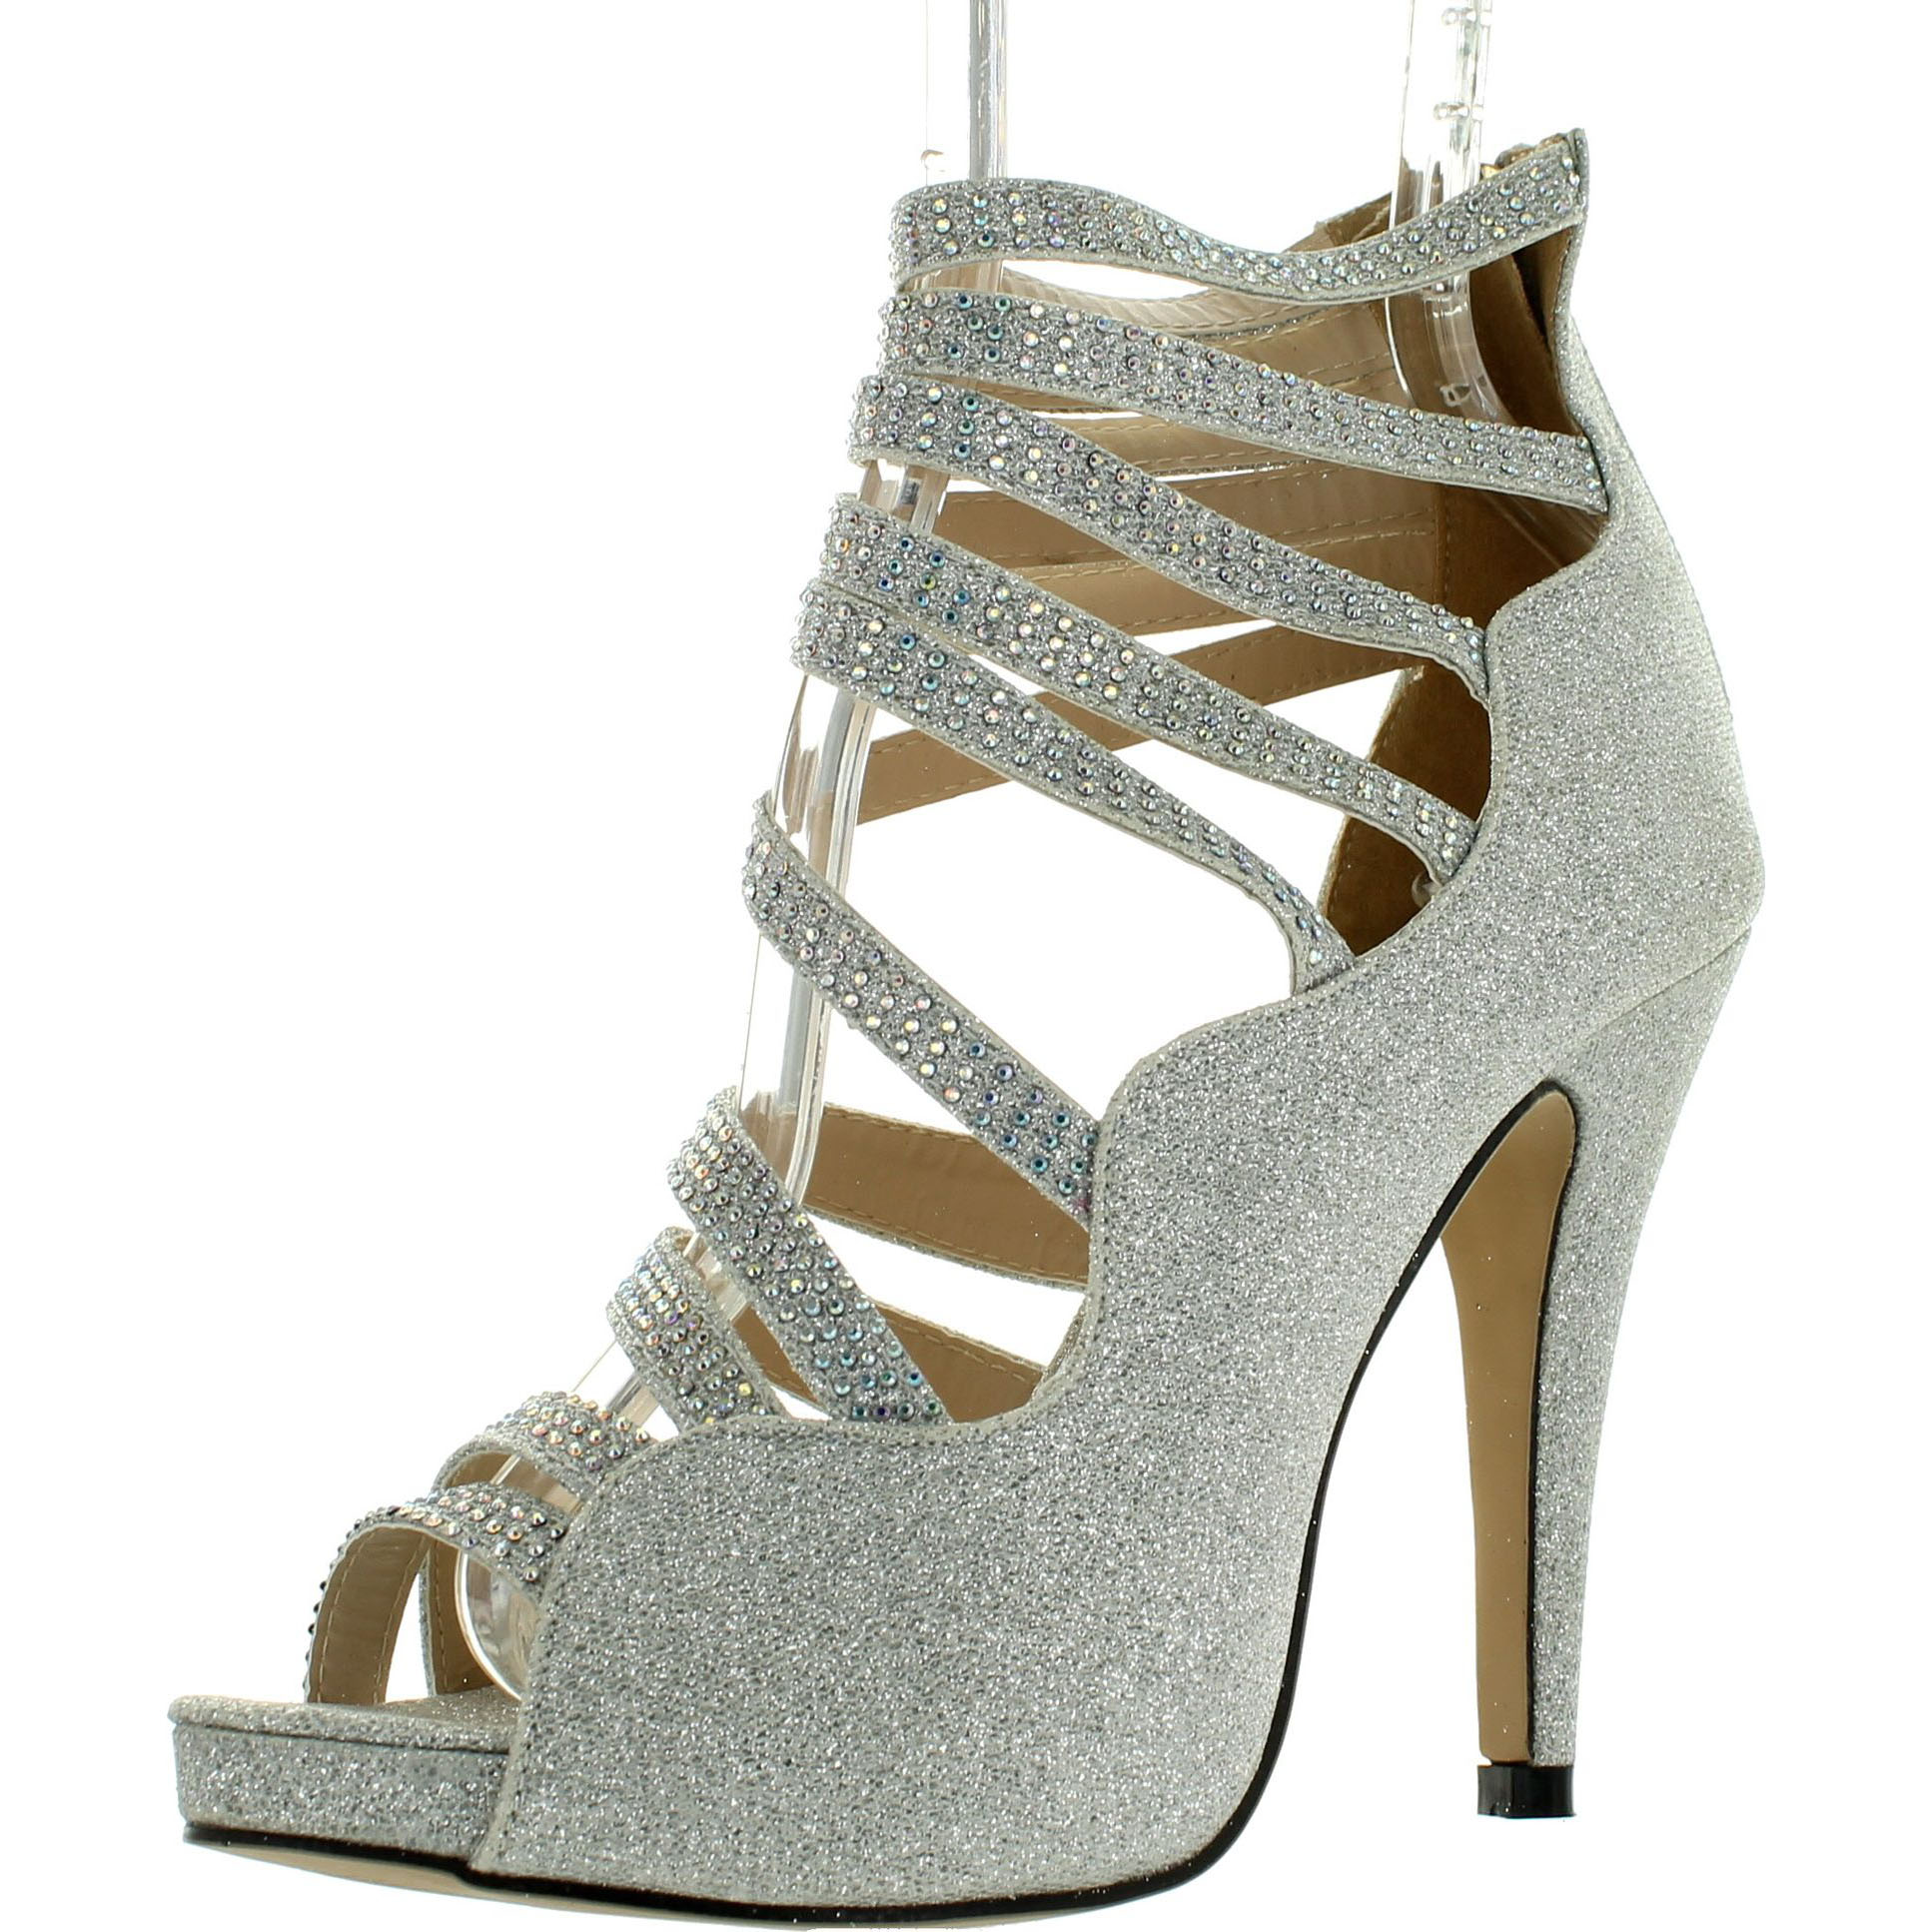 EYE CANDIE WINK-201 Women Glitter Multi Strappy Back Zipper Stiletto Heel Sandal